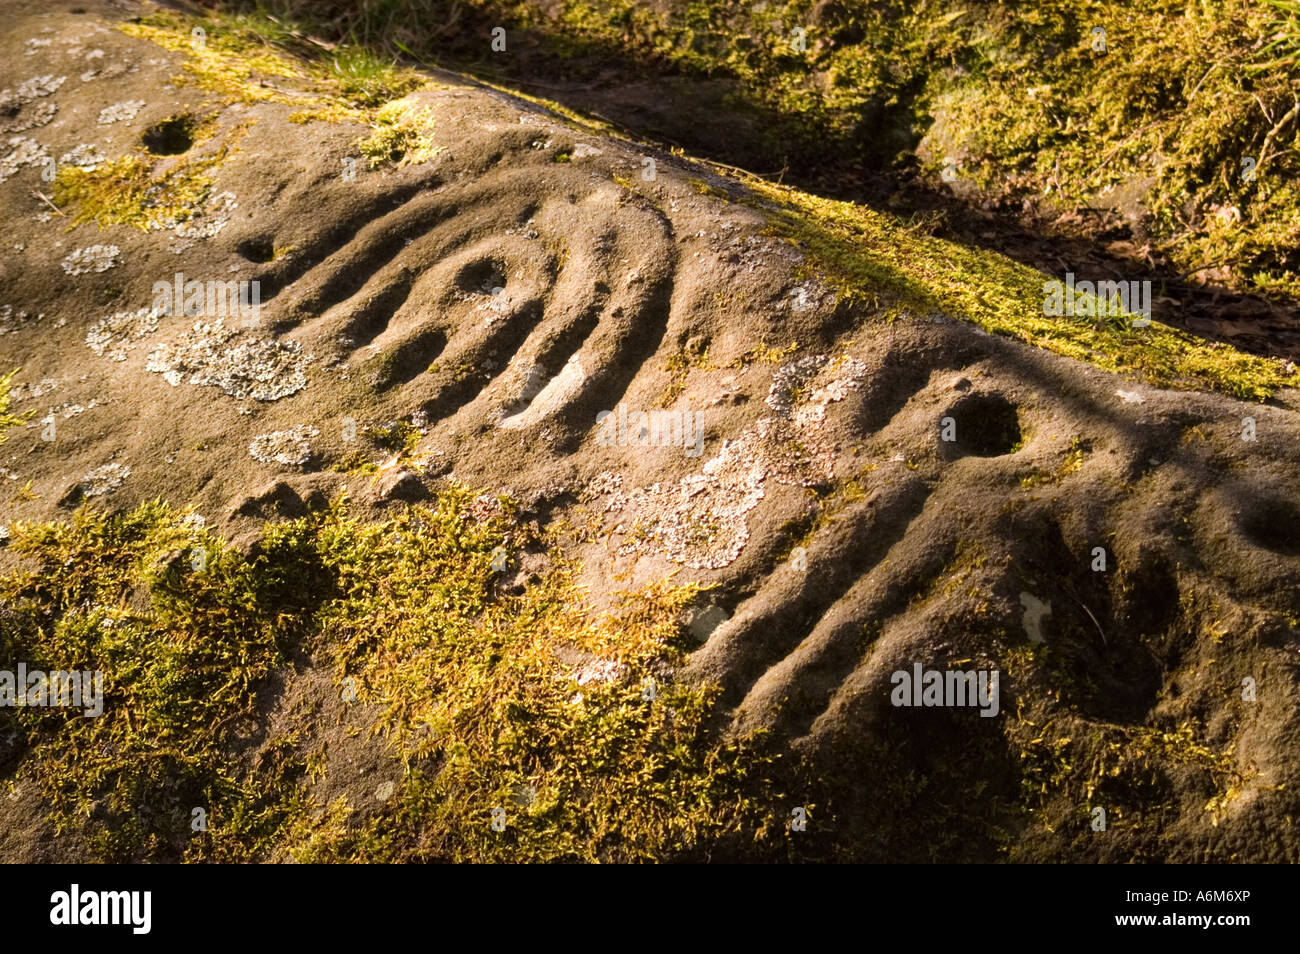 Detail of carved rock at Roughting Linn, Northumberland - Stock Image